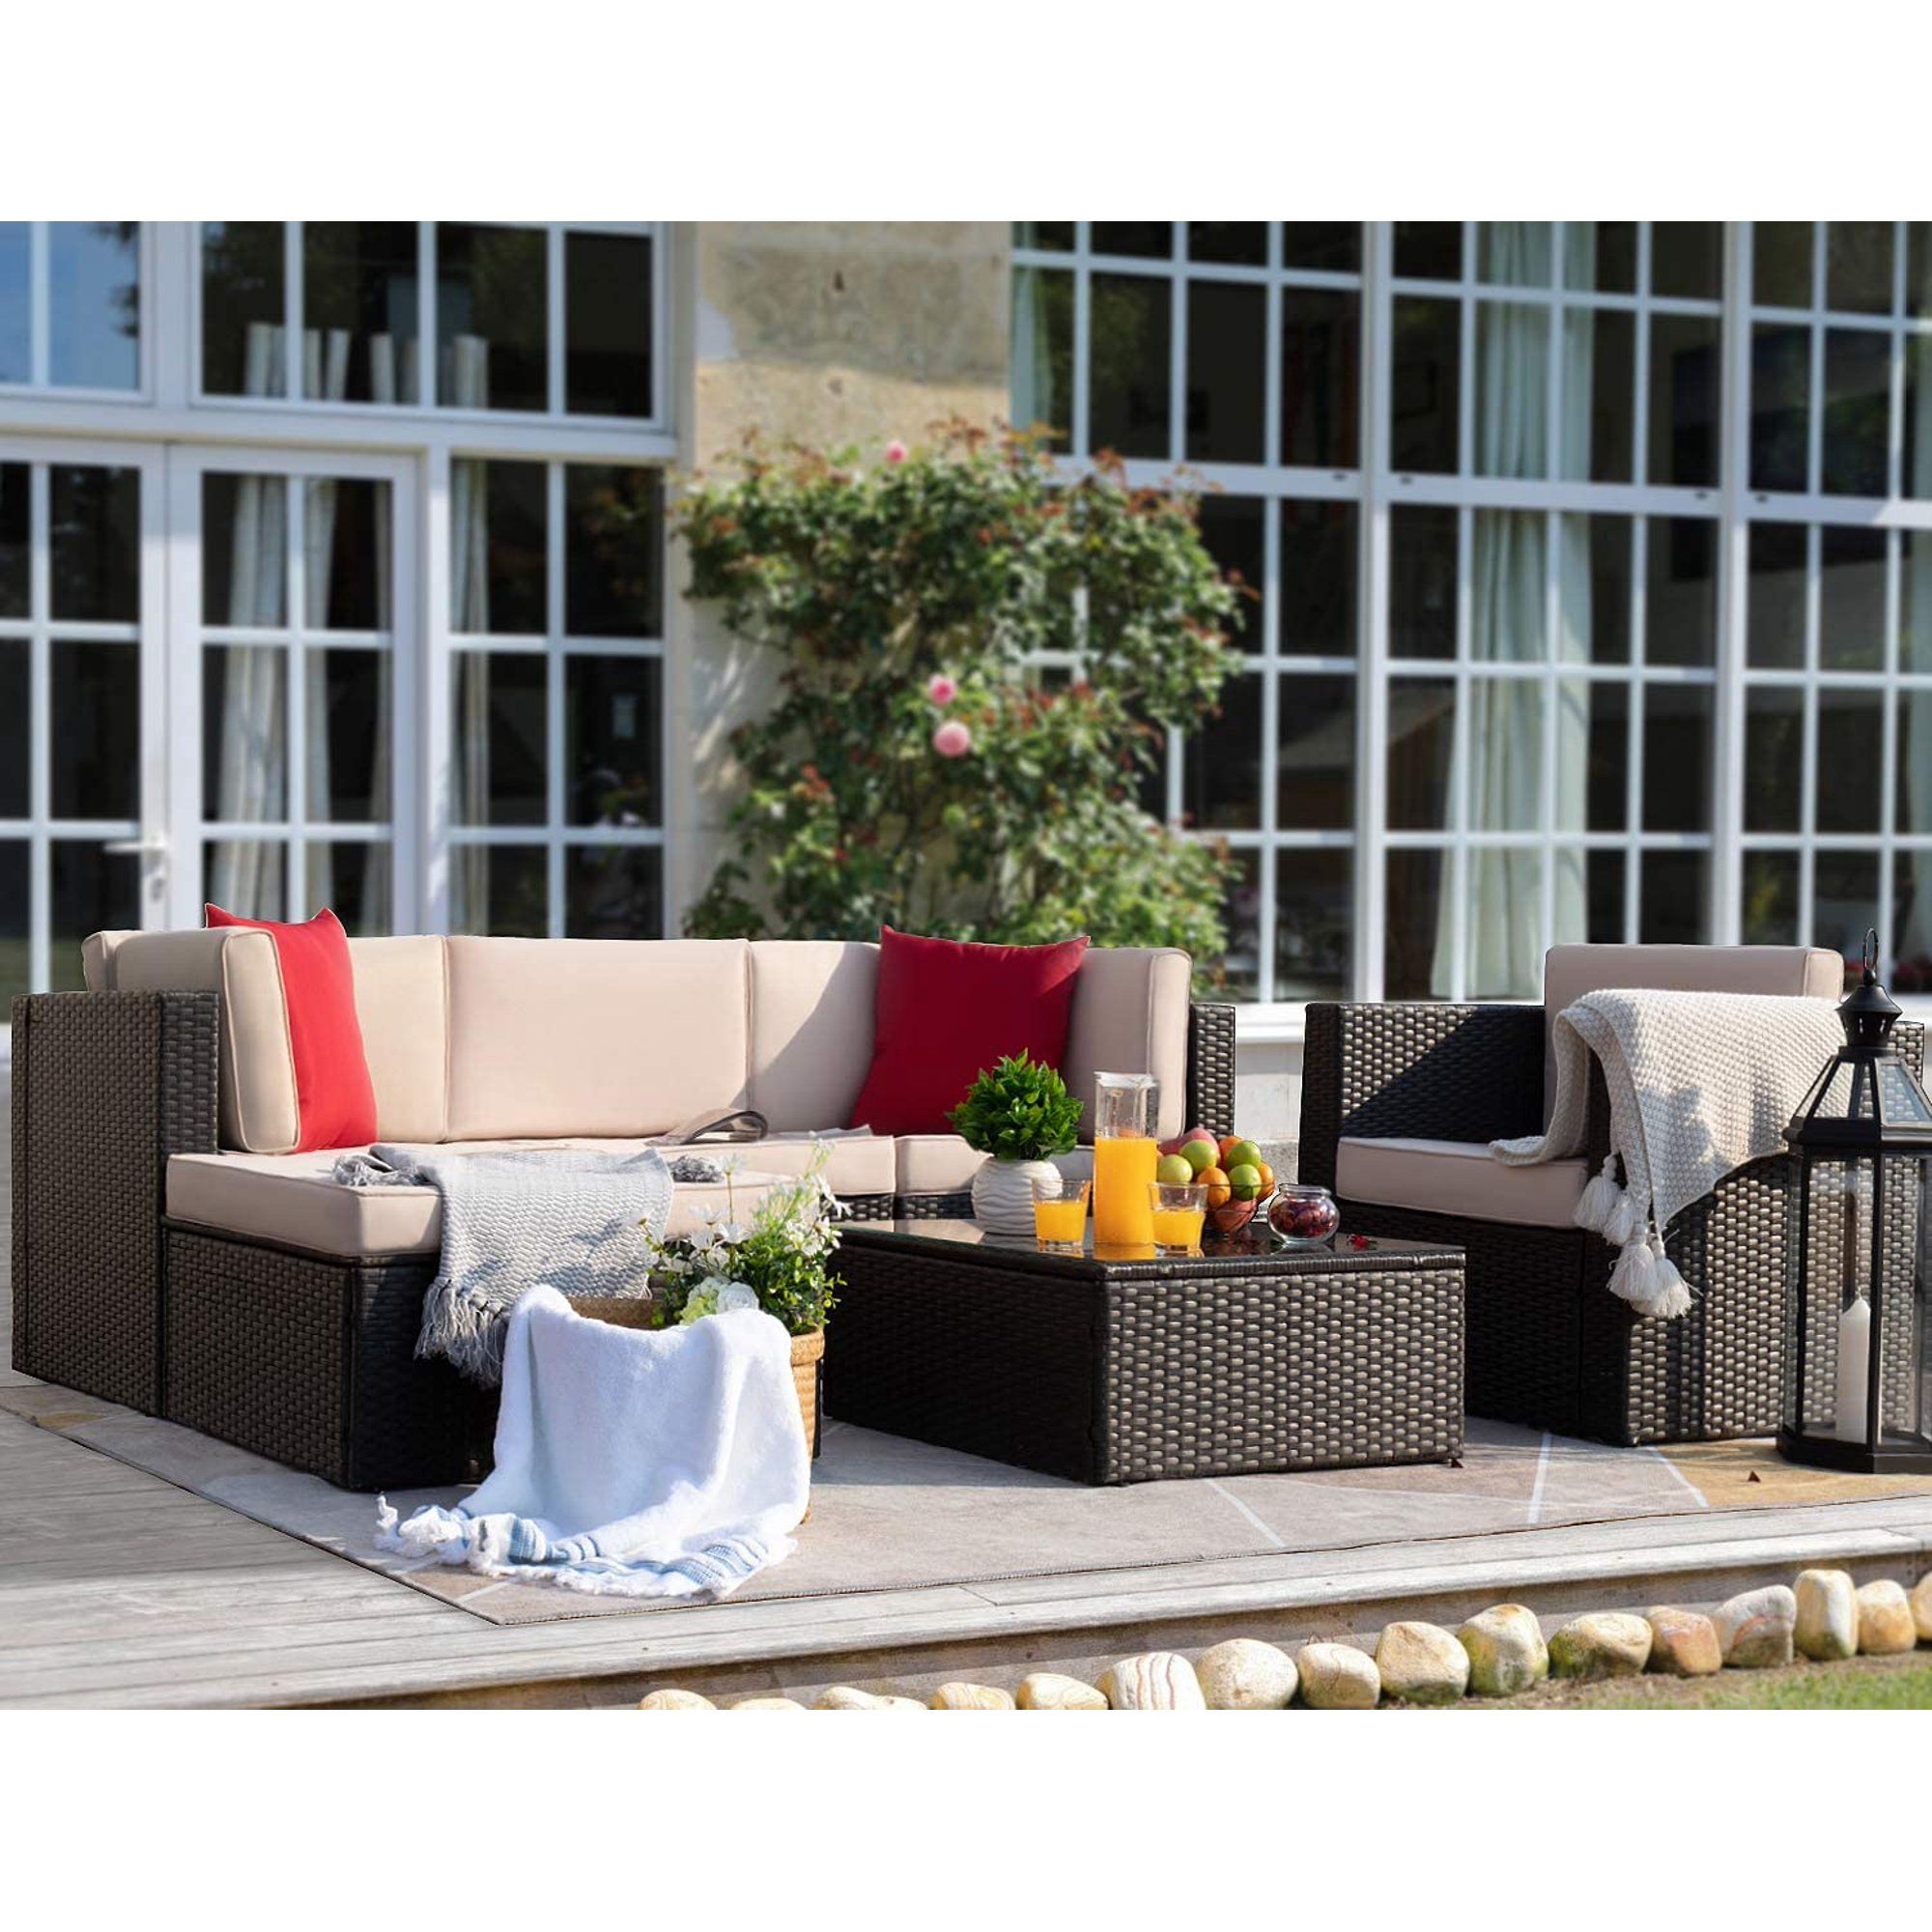 Walnew 6 Pieces Patio Furniture Set Outdoor Sectional Sofa Outdoor Furniture Beige Walmart Com Walmart Com In 2020 Patio Furniture Sets Patio Patio Furniture